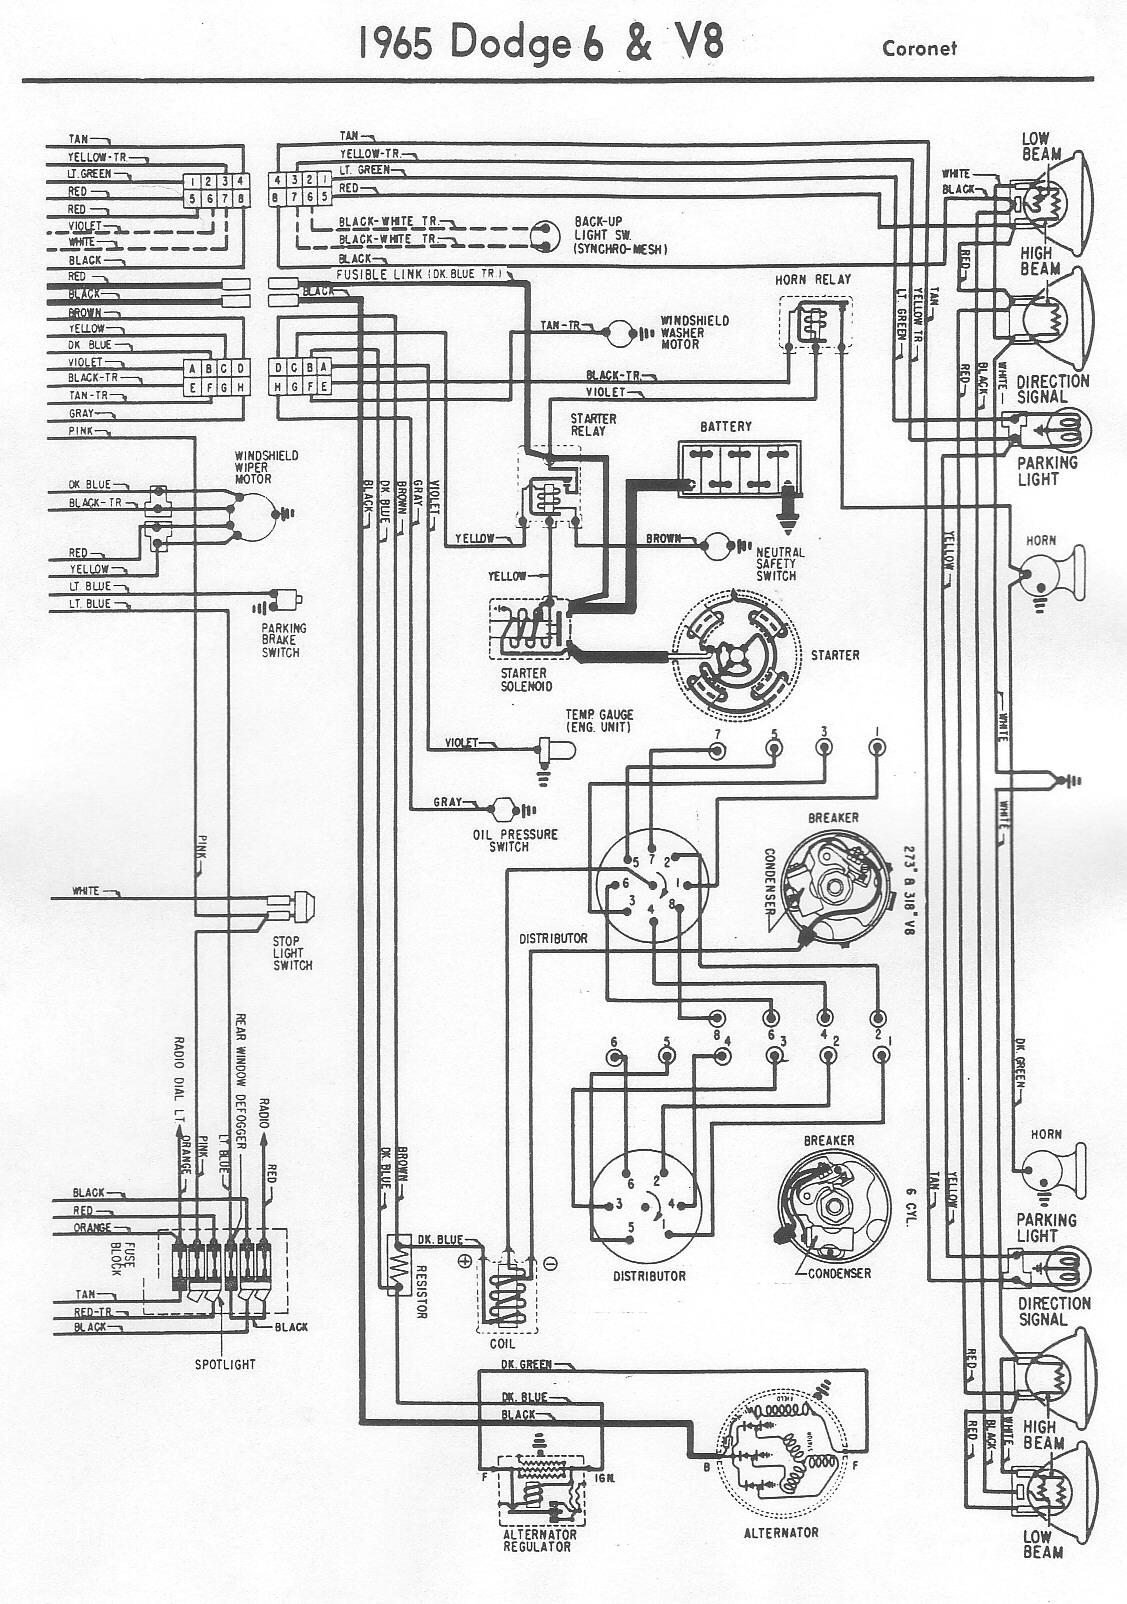 hight resolution of 1960 dodge wiring diagram online wiring diagram 1960 dodge pickup wiring diagram free download